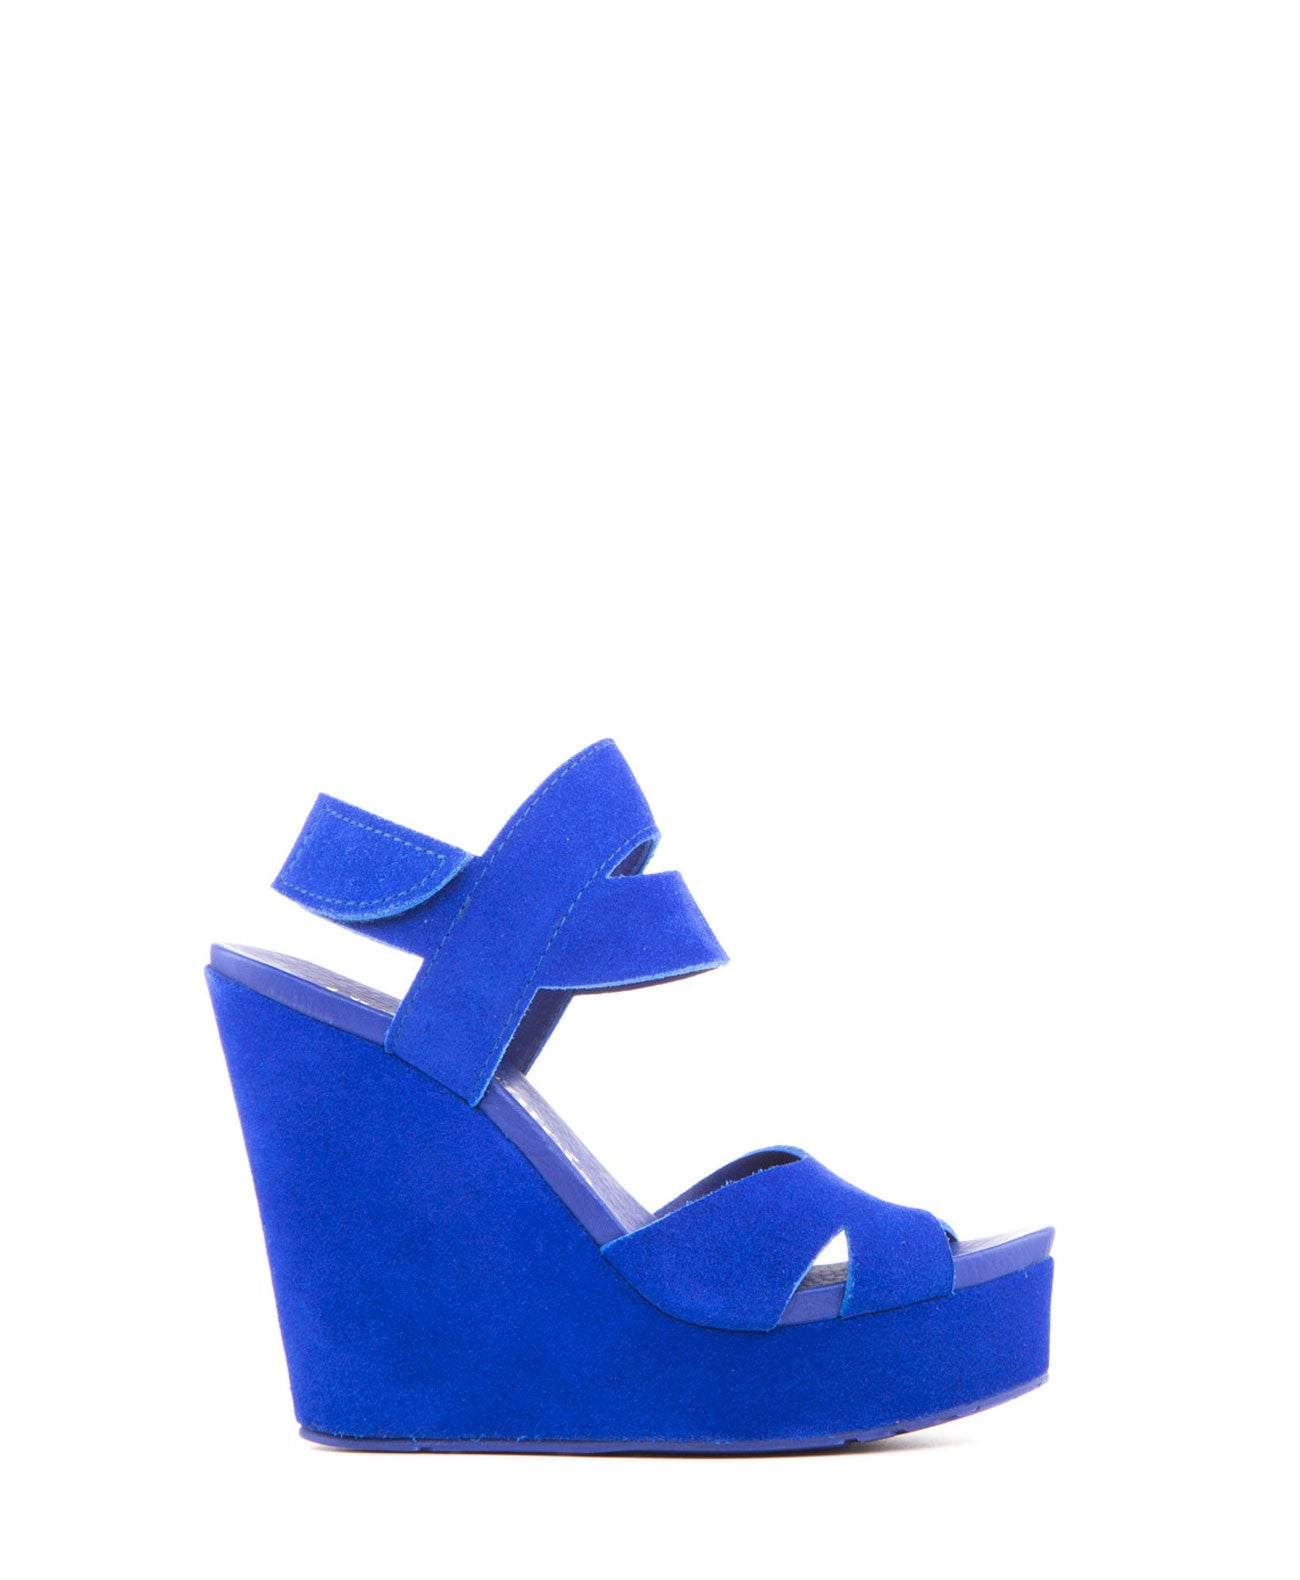 Teilor Castoro Suede Wedge in Blue - Koko & Palenki - 1